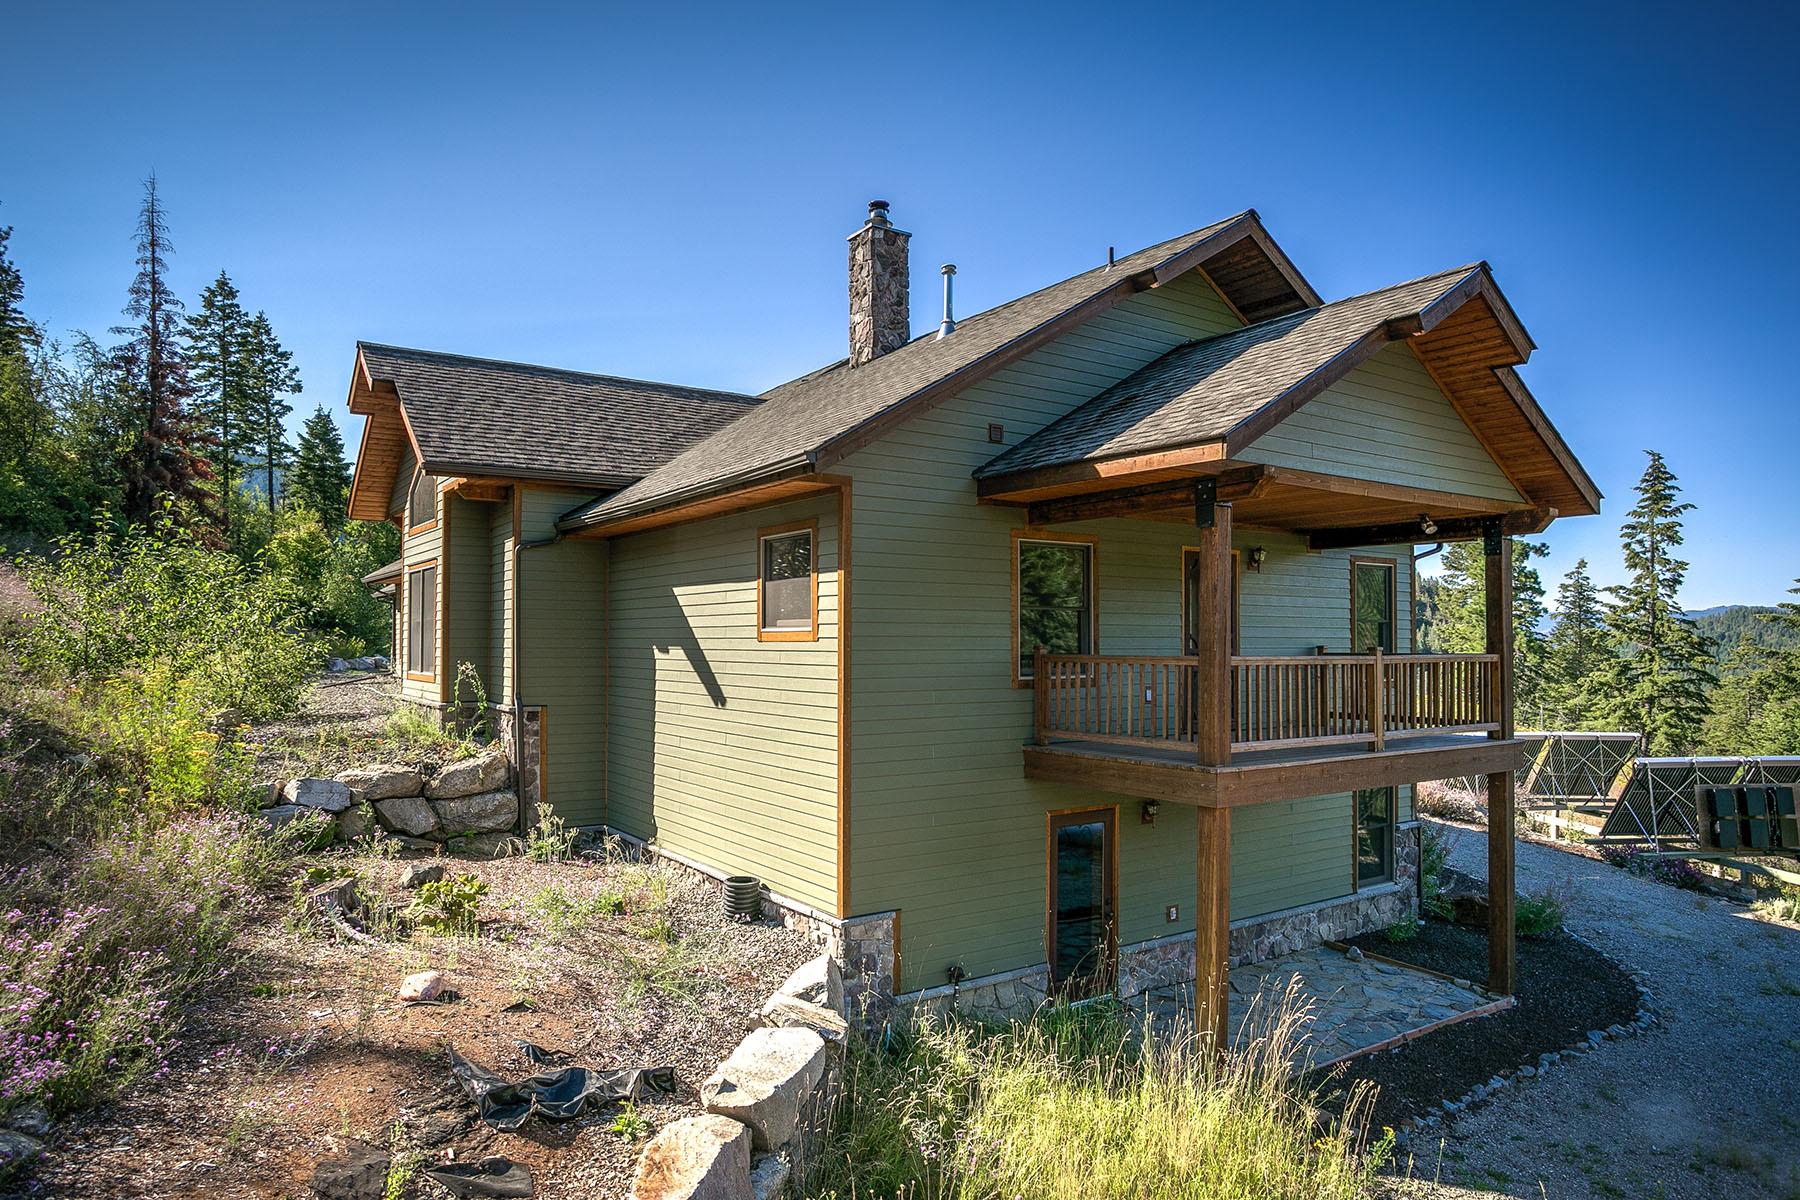 Maison unifamiliale pour l Vente à Luxurious Wilderness Sanctuary 0 Trout Creek Ranch Rd Sandpoint, Idaho, 83864 États-Unis